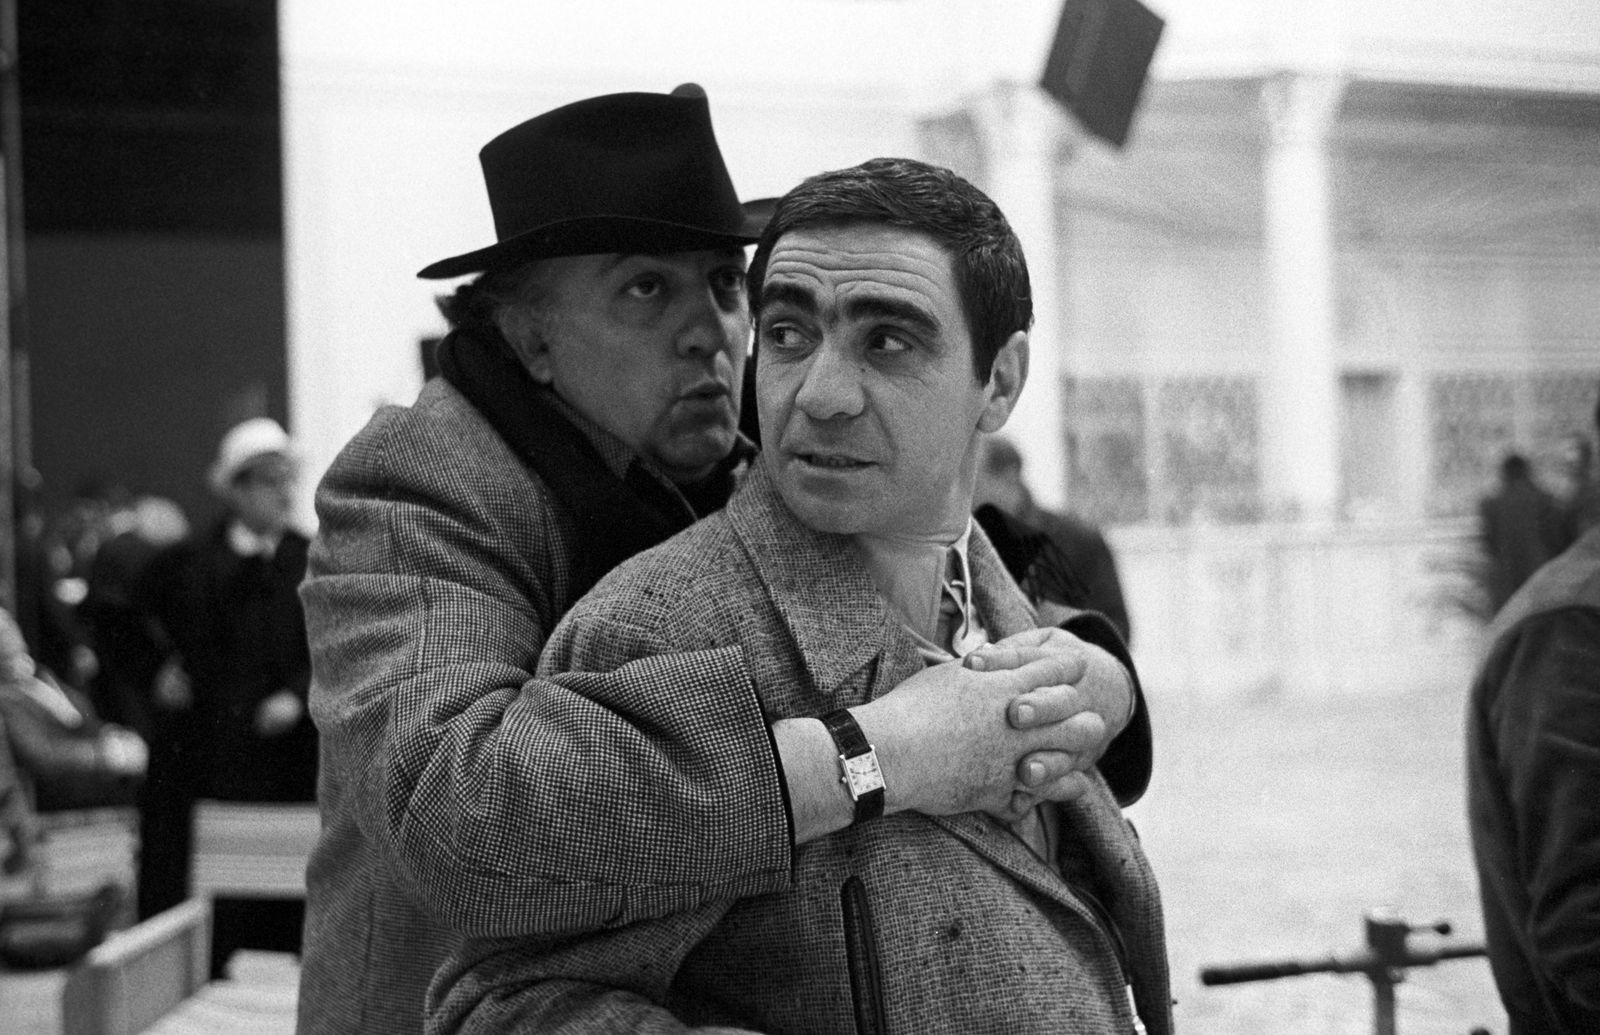 Federico Fellini and Giuseppe Rotunno on the set of the film Amarcord